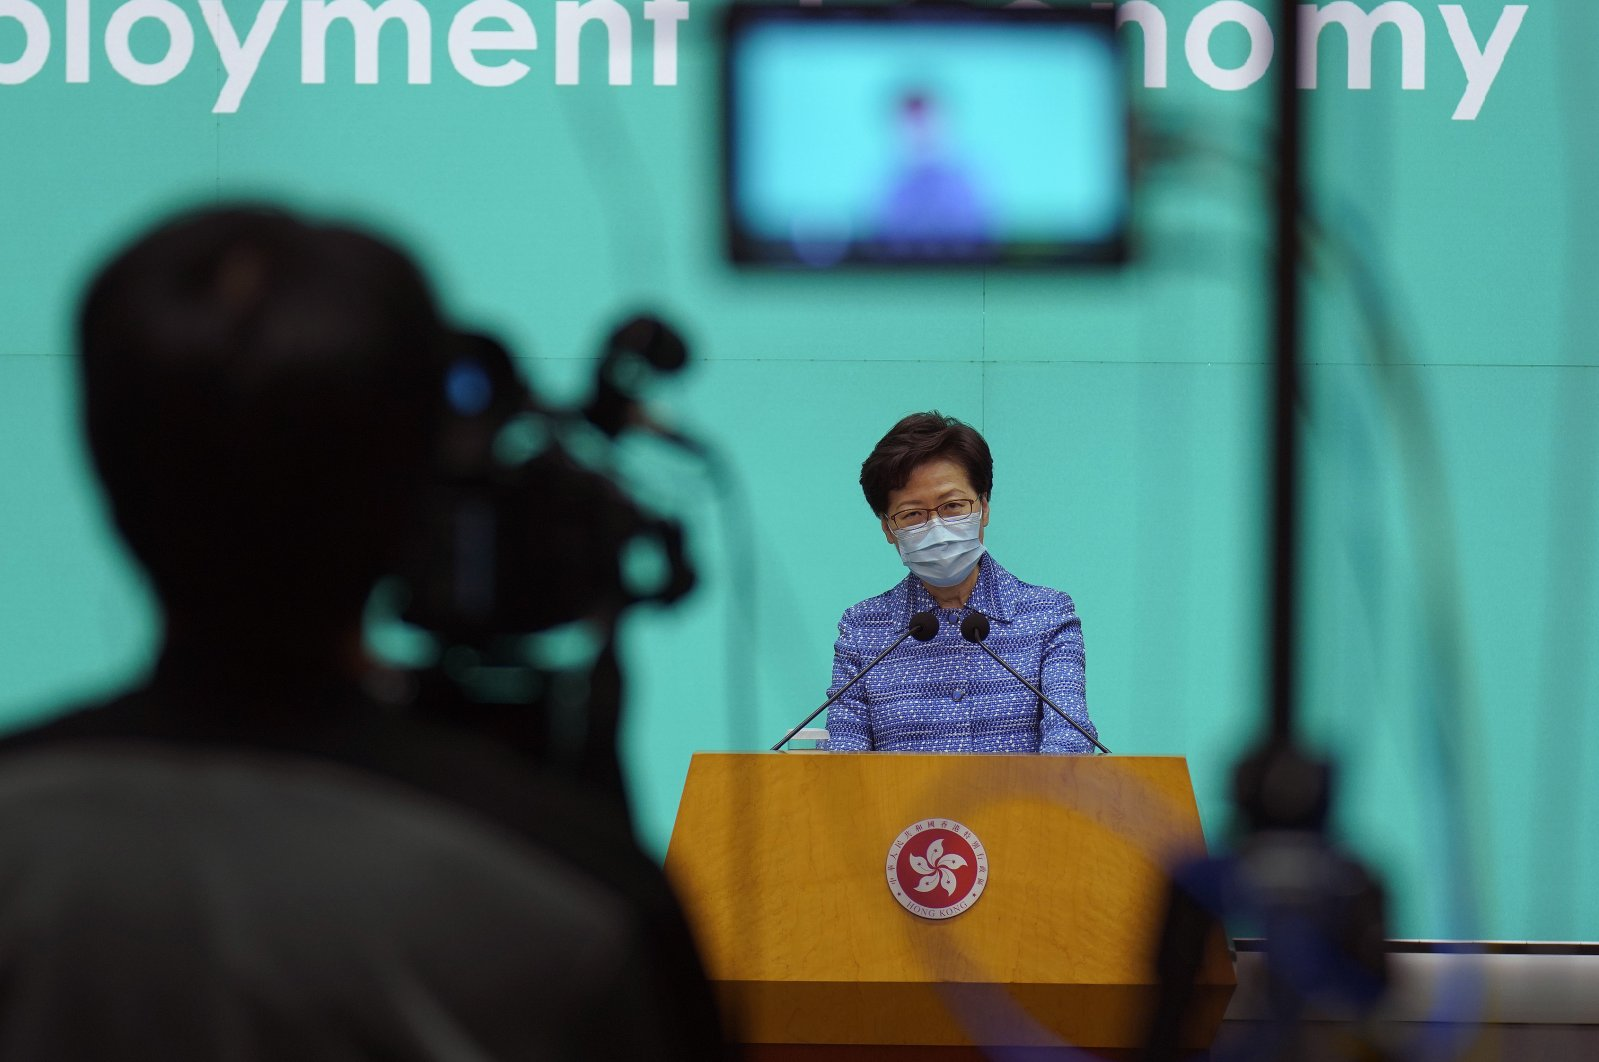 Hong Kong Chief Executive Carrie Lam listens to reporters' questions during a press conference in Hong Kong, Tuesday, May 26, 2020. (AP Photo)